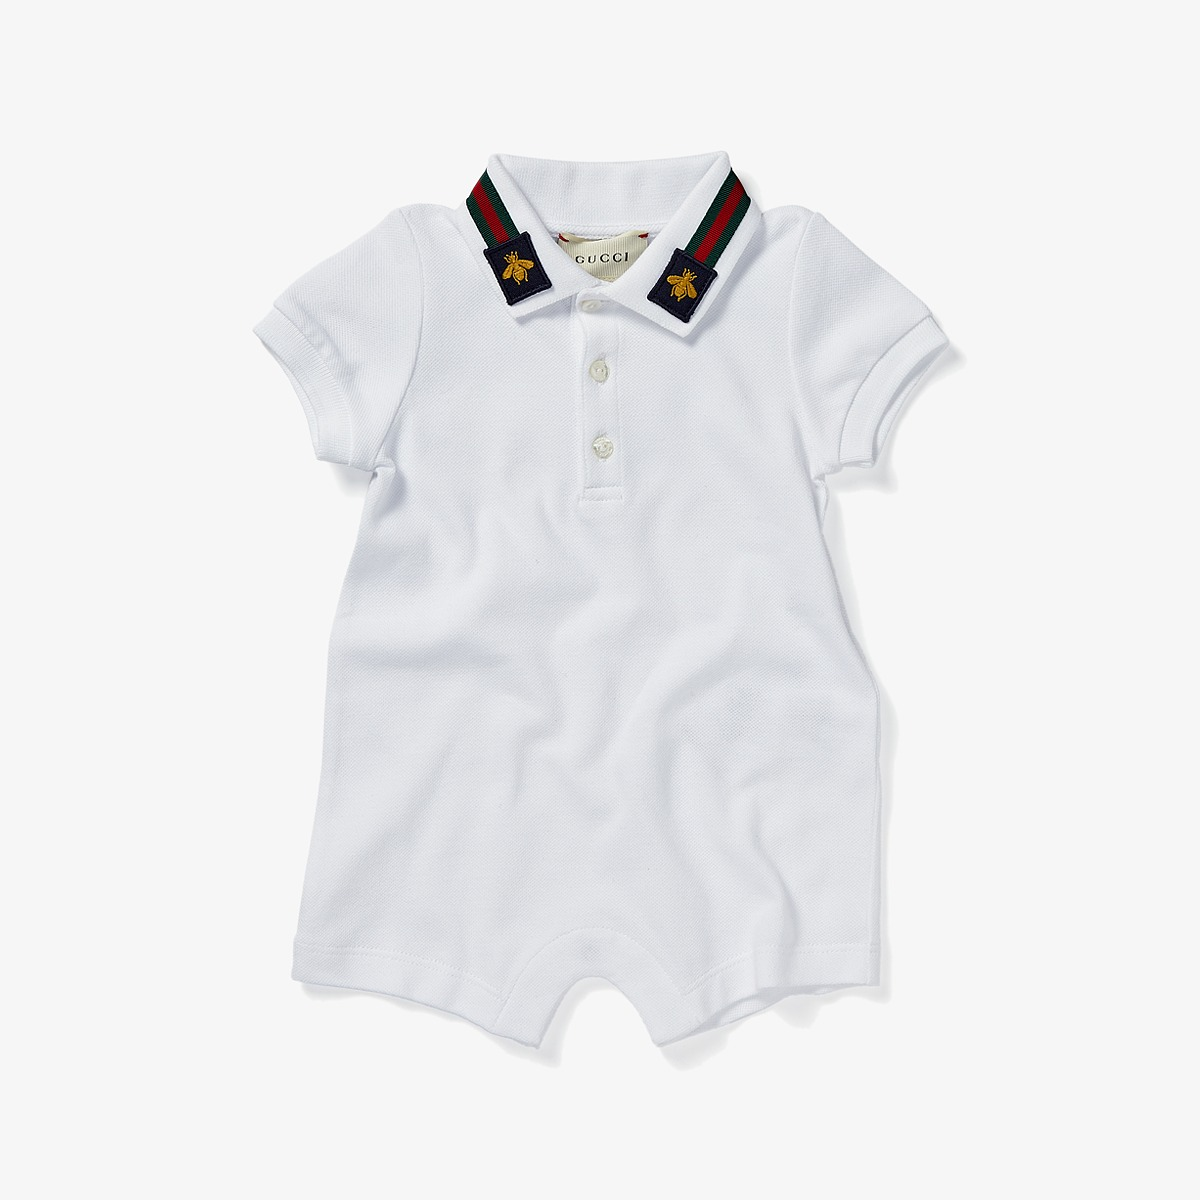 Gucci Kids - Sleepsuit 497861X9L97 (Infant) (Optic White/Green/Red) Boys Jumpsuit & Rompers One Piece